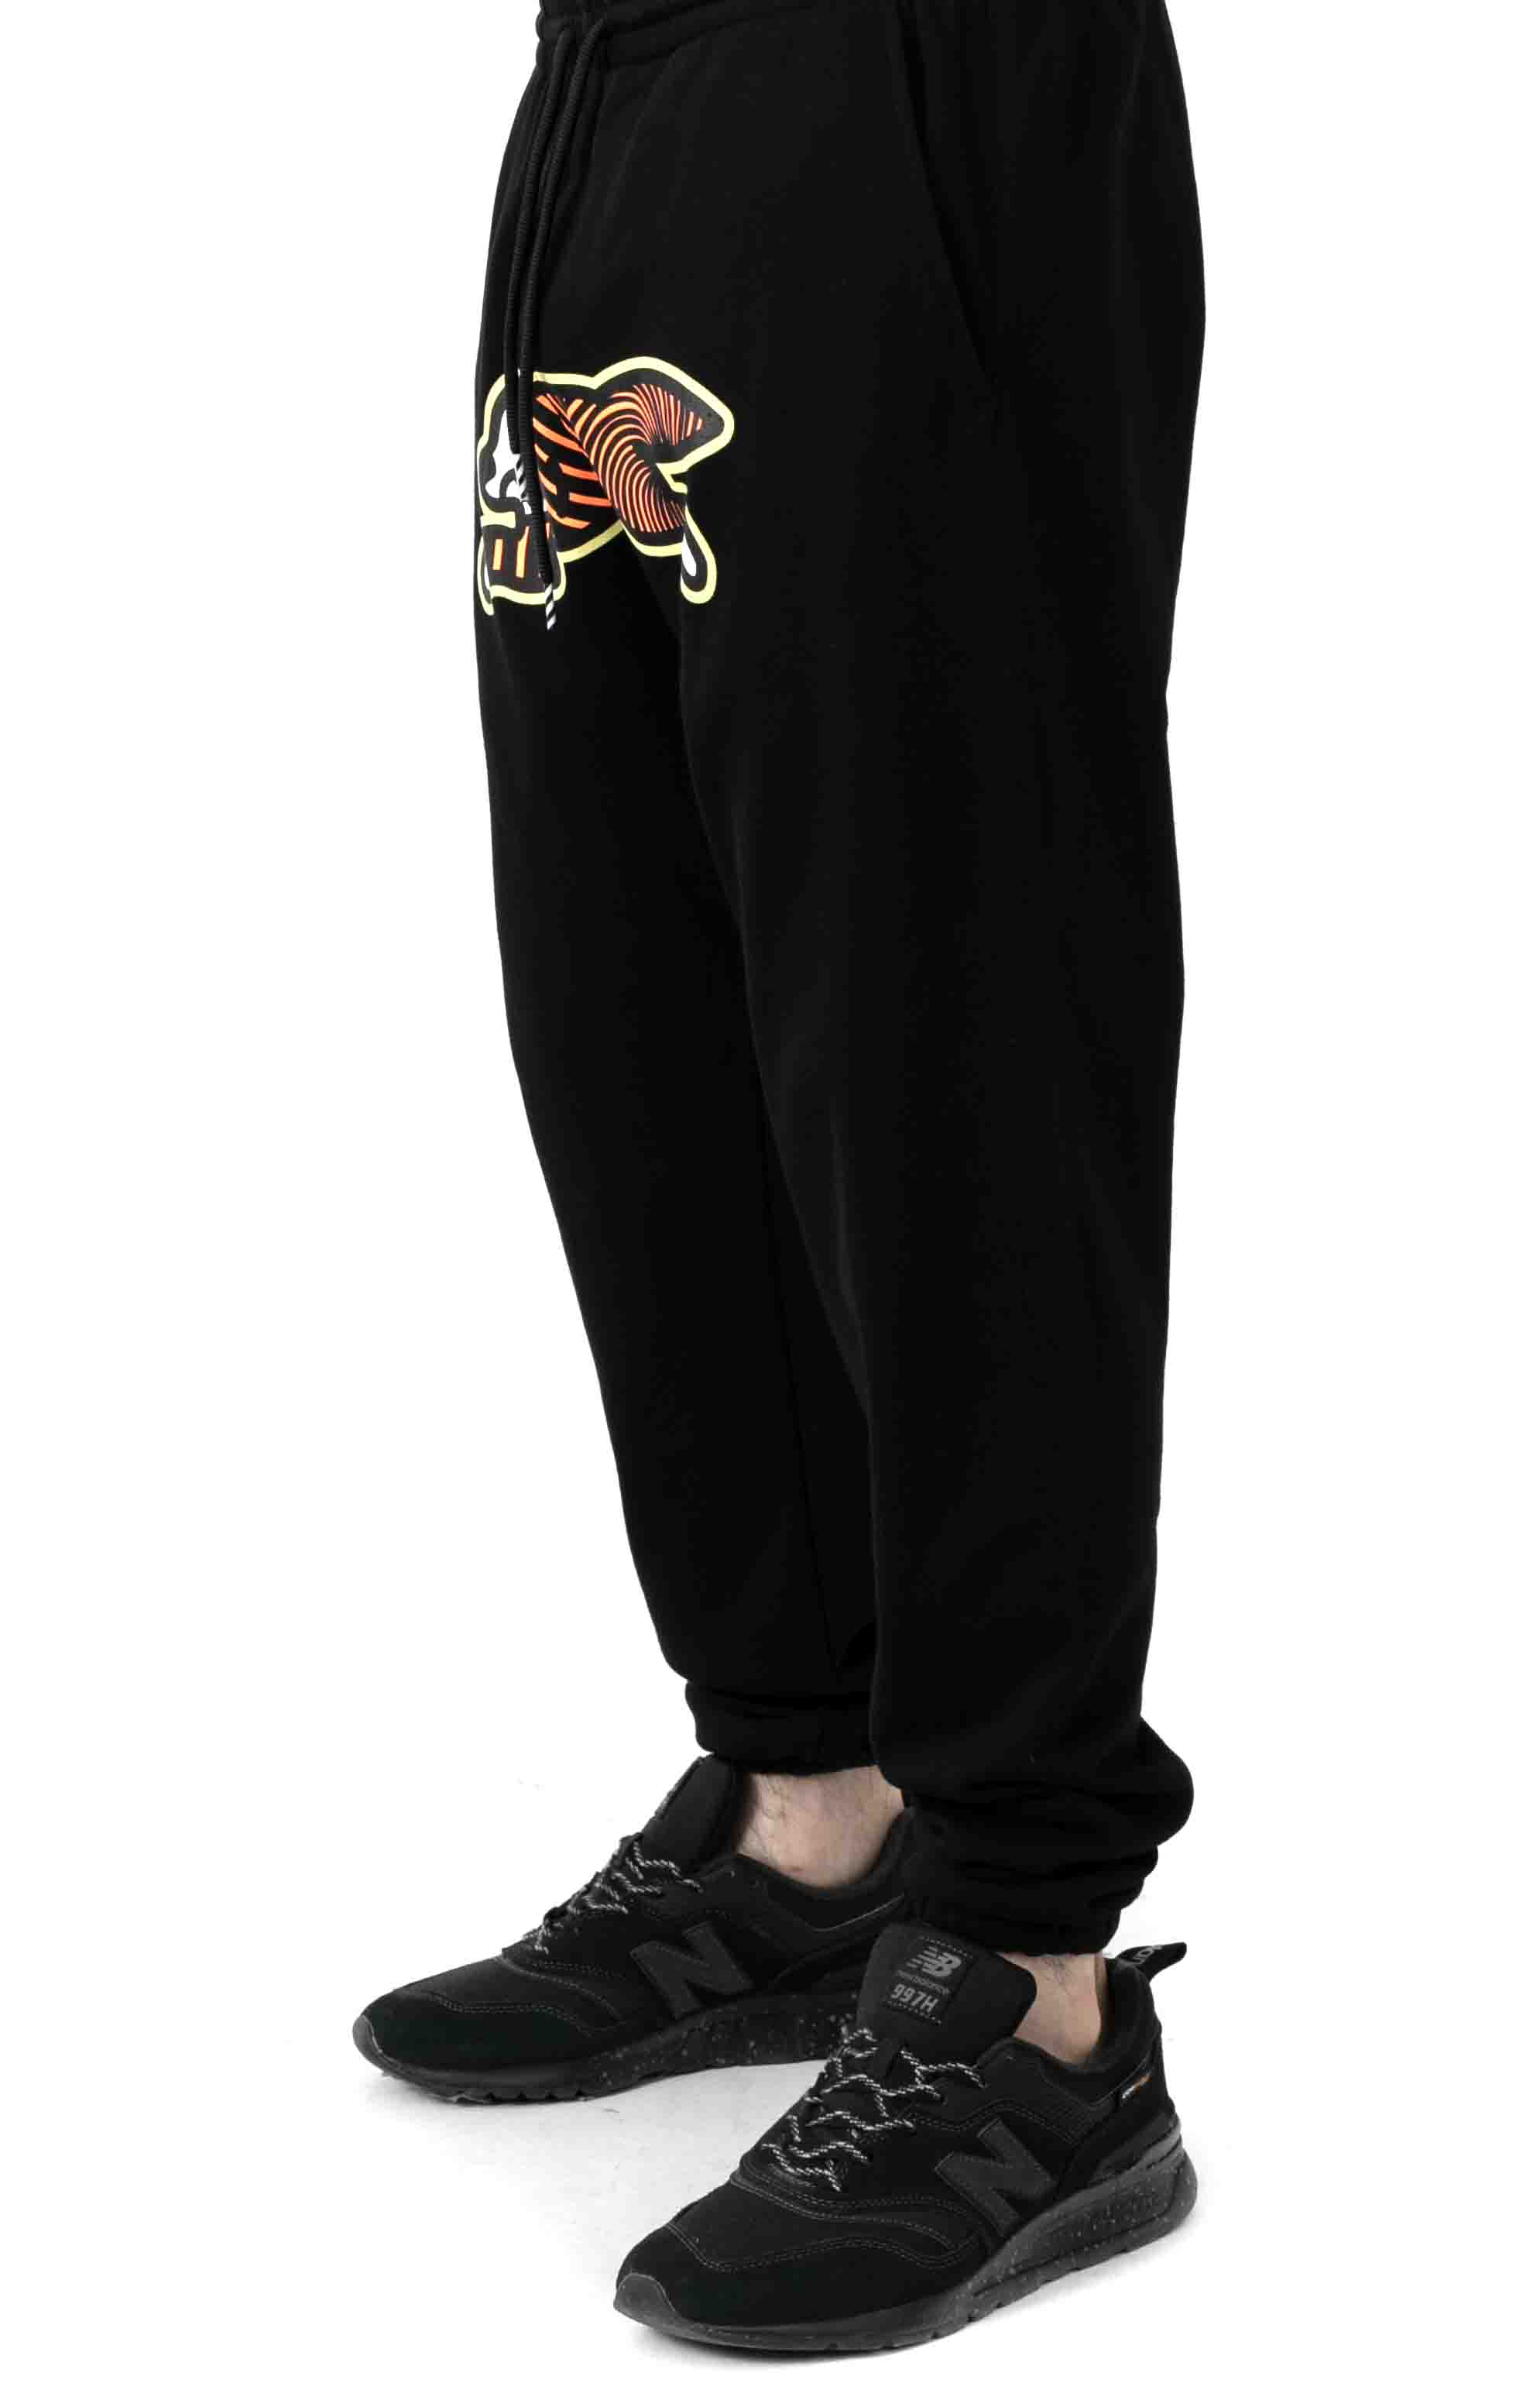 Spiral Sweatpant - Black 2